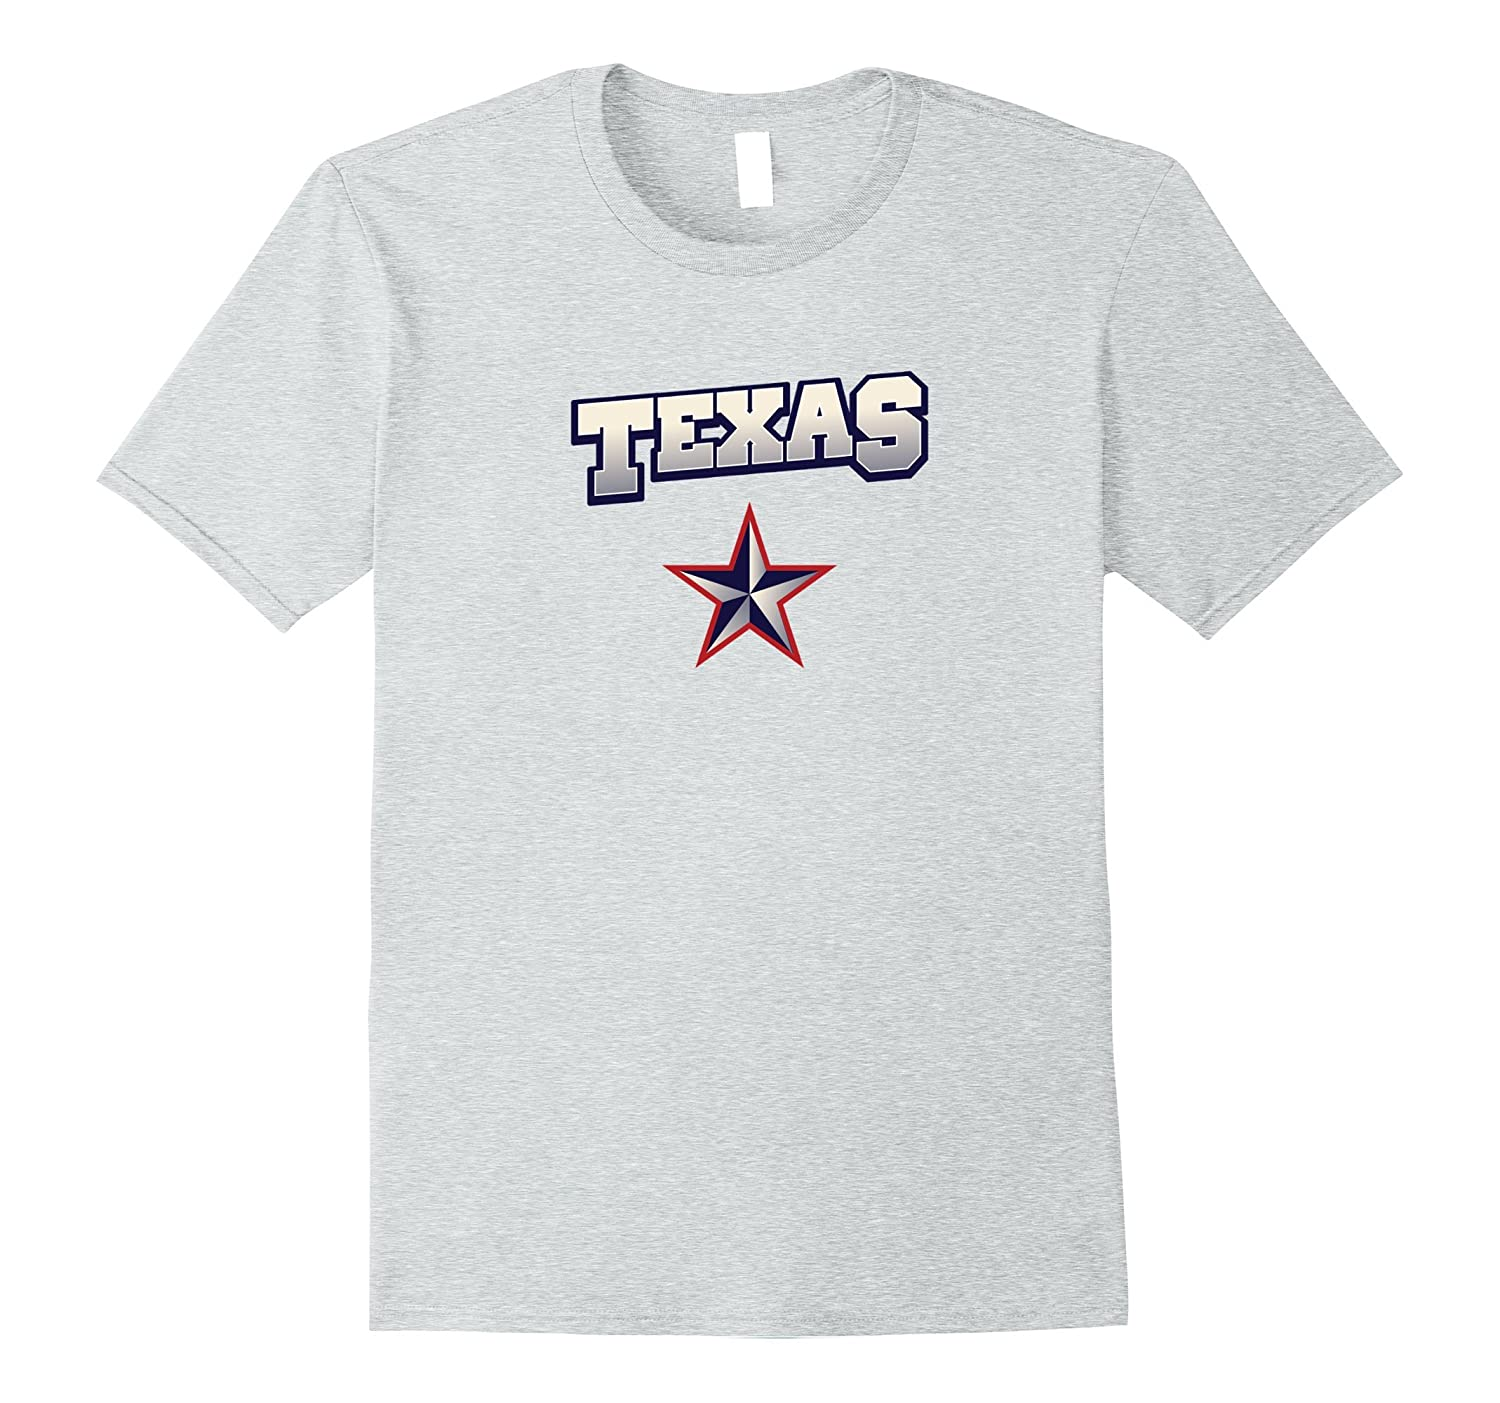 Awesome Texas T Shirt for Men and Women-FL